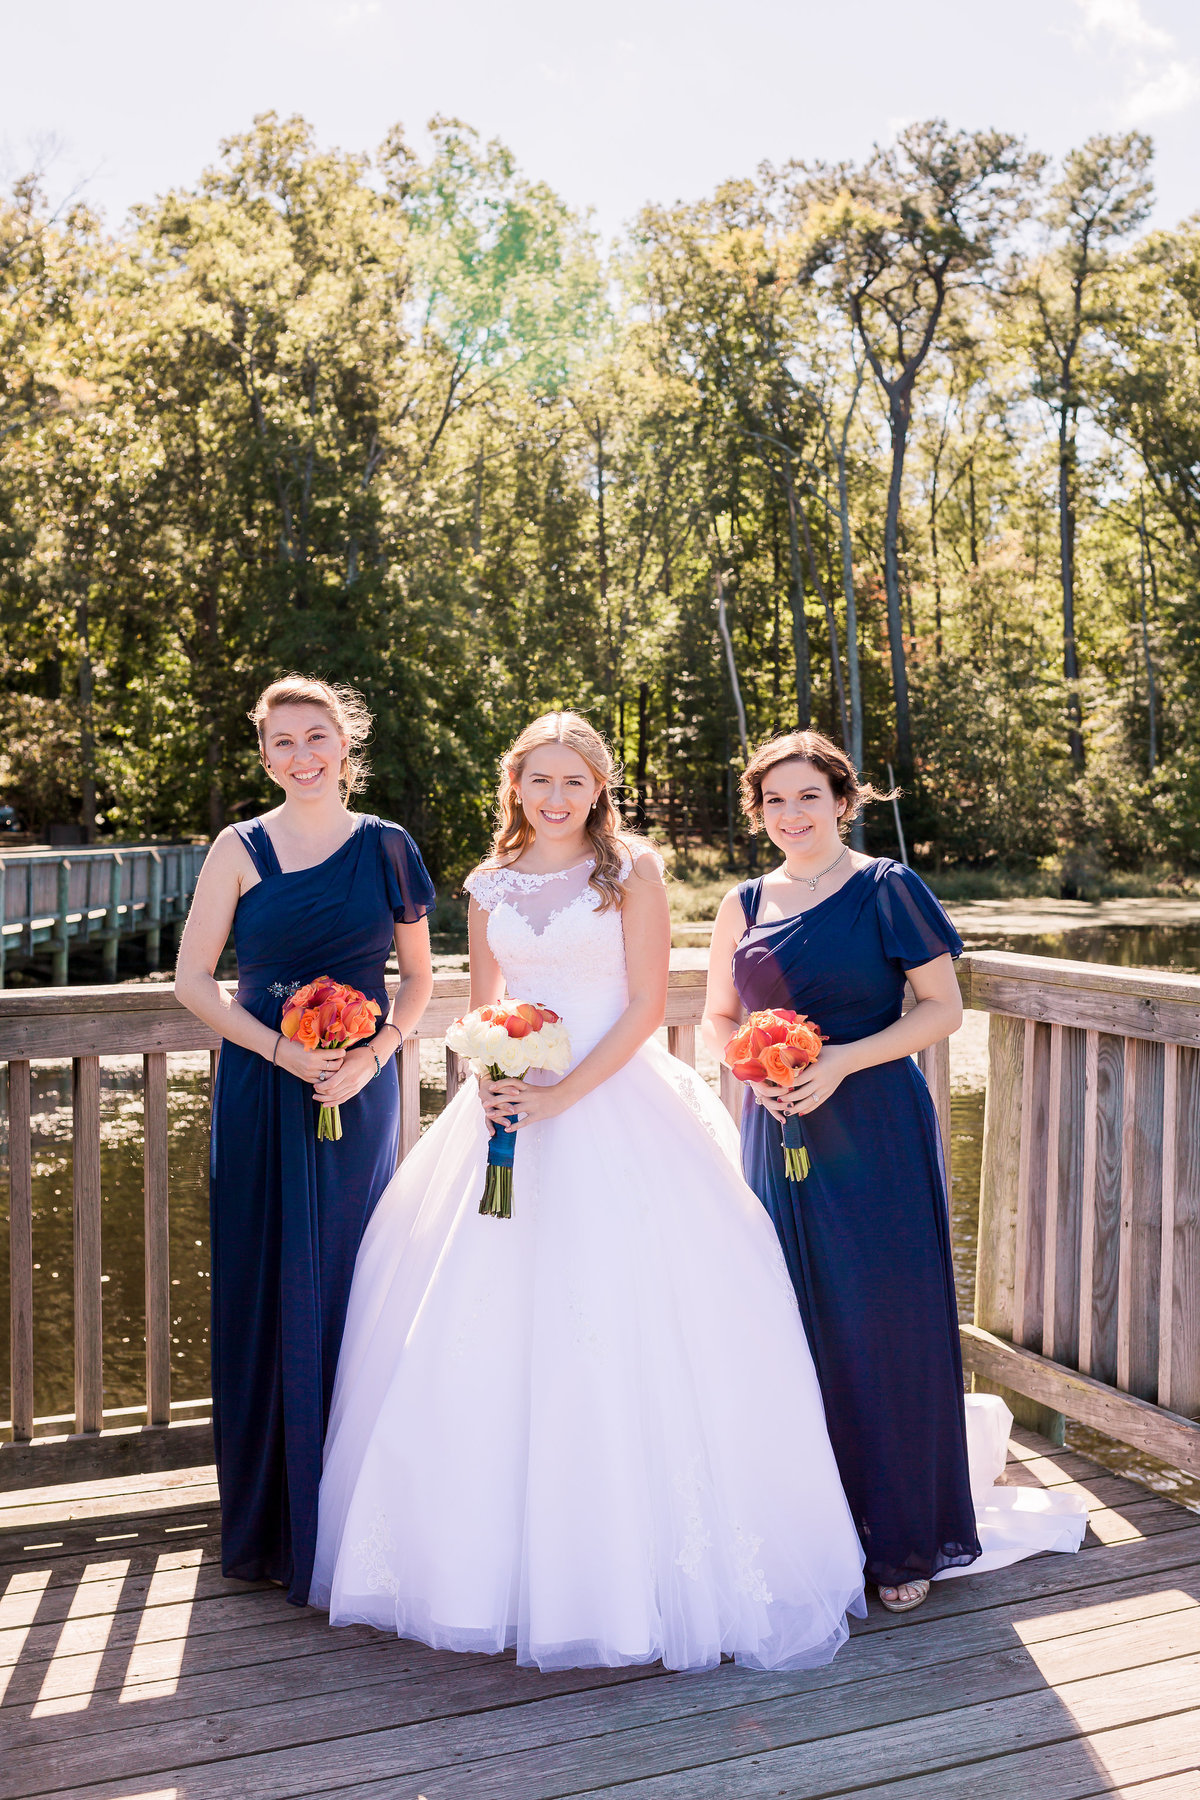 A bride and her bridesmaids pose on the boardwalk at Newport News Park